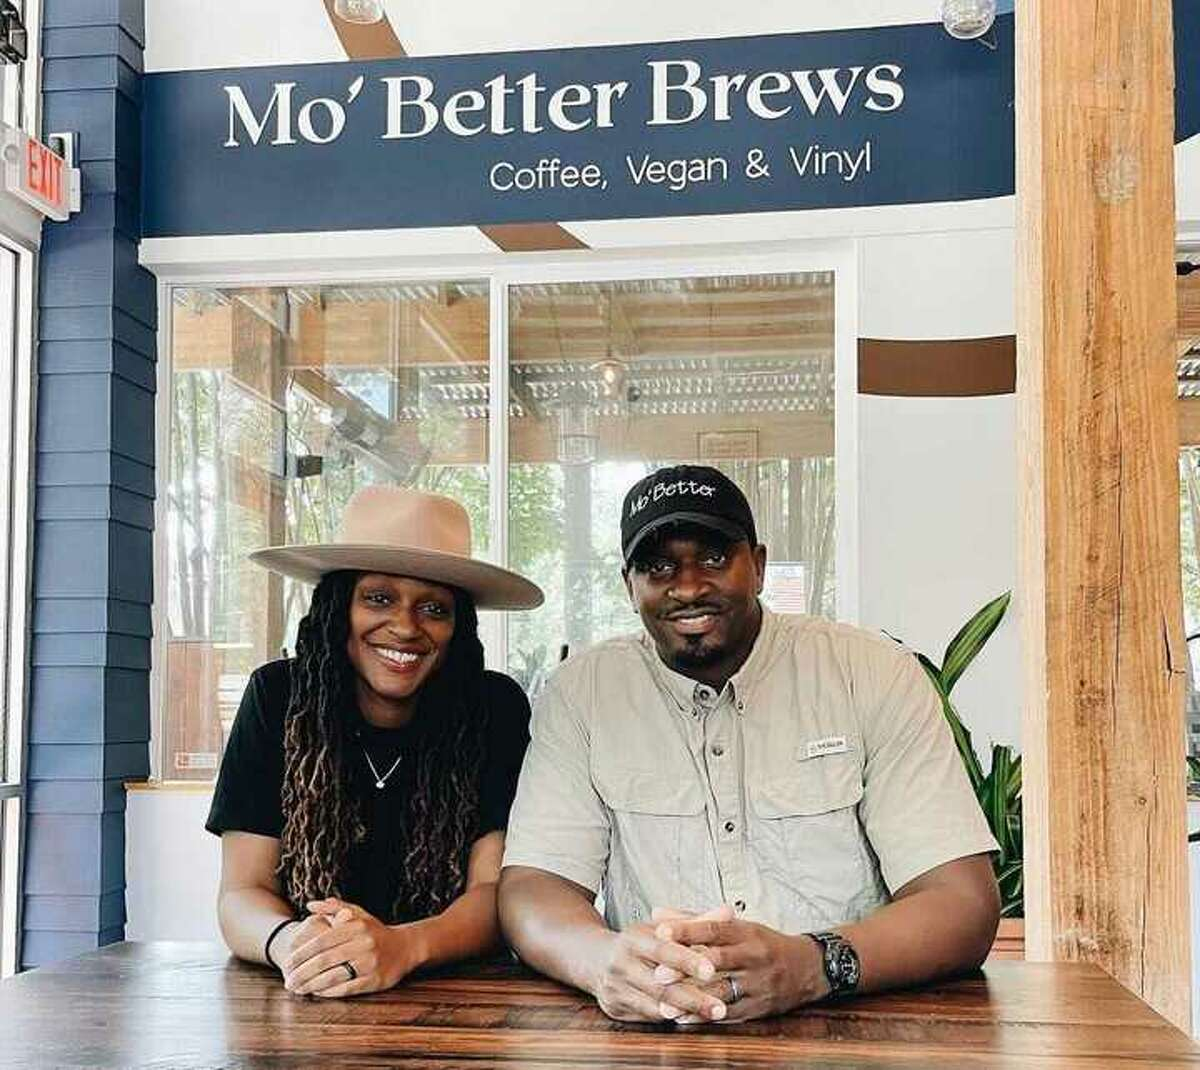 A new vegan coffee shop is opening in Houston.